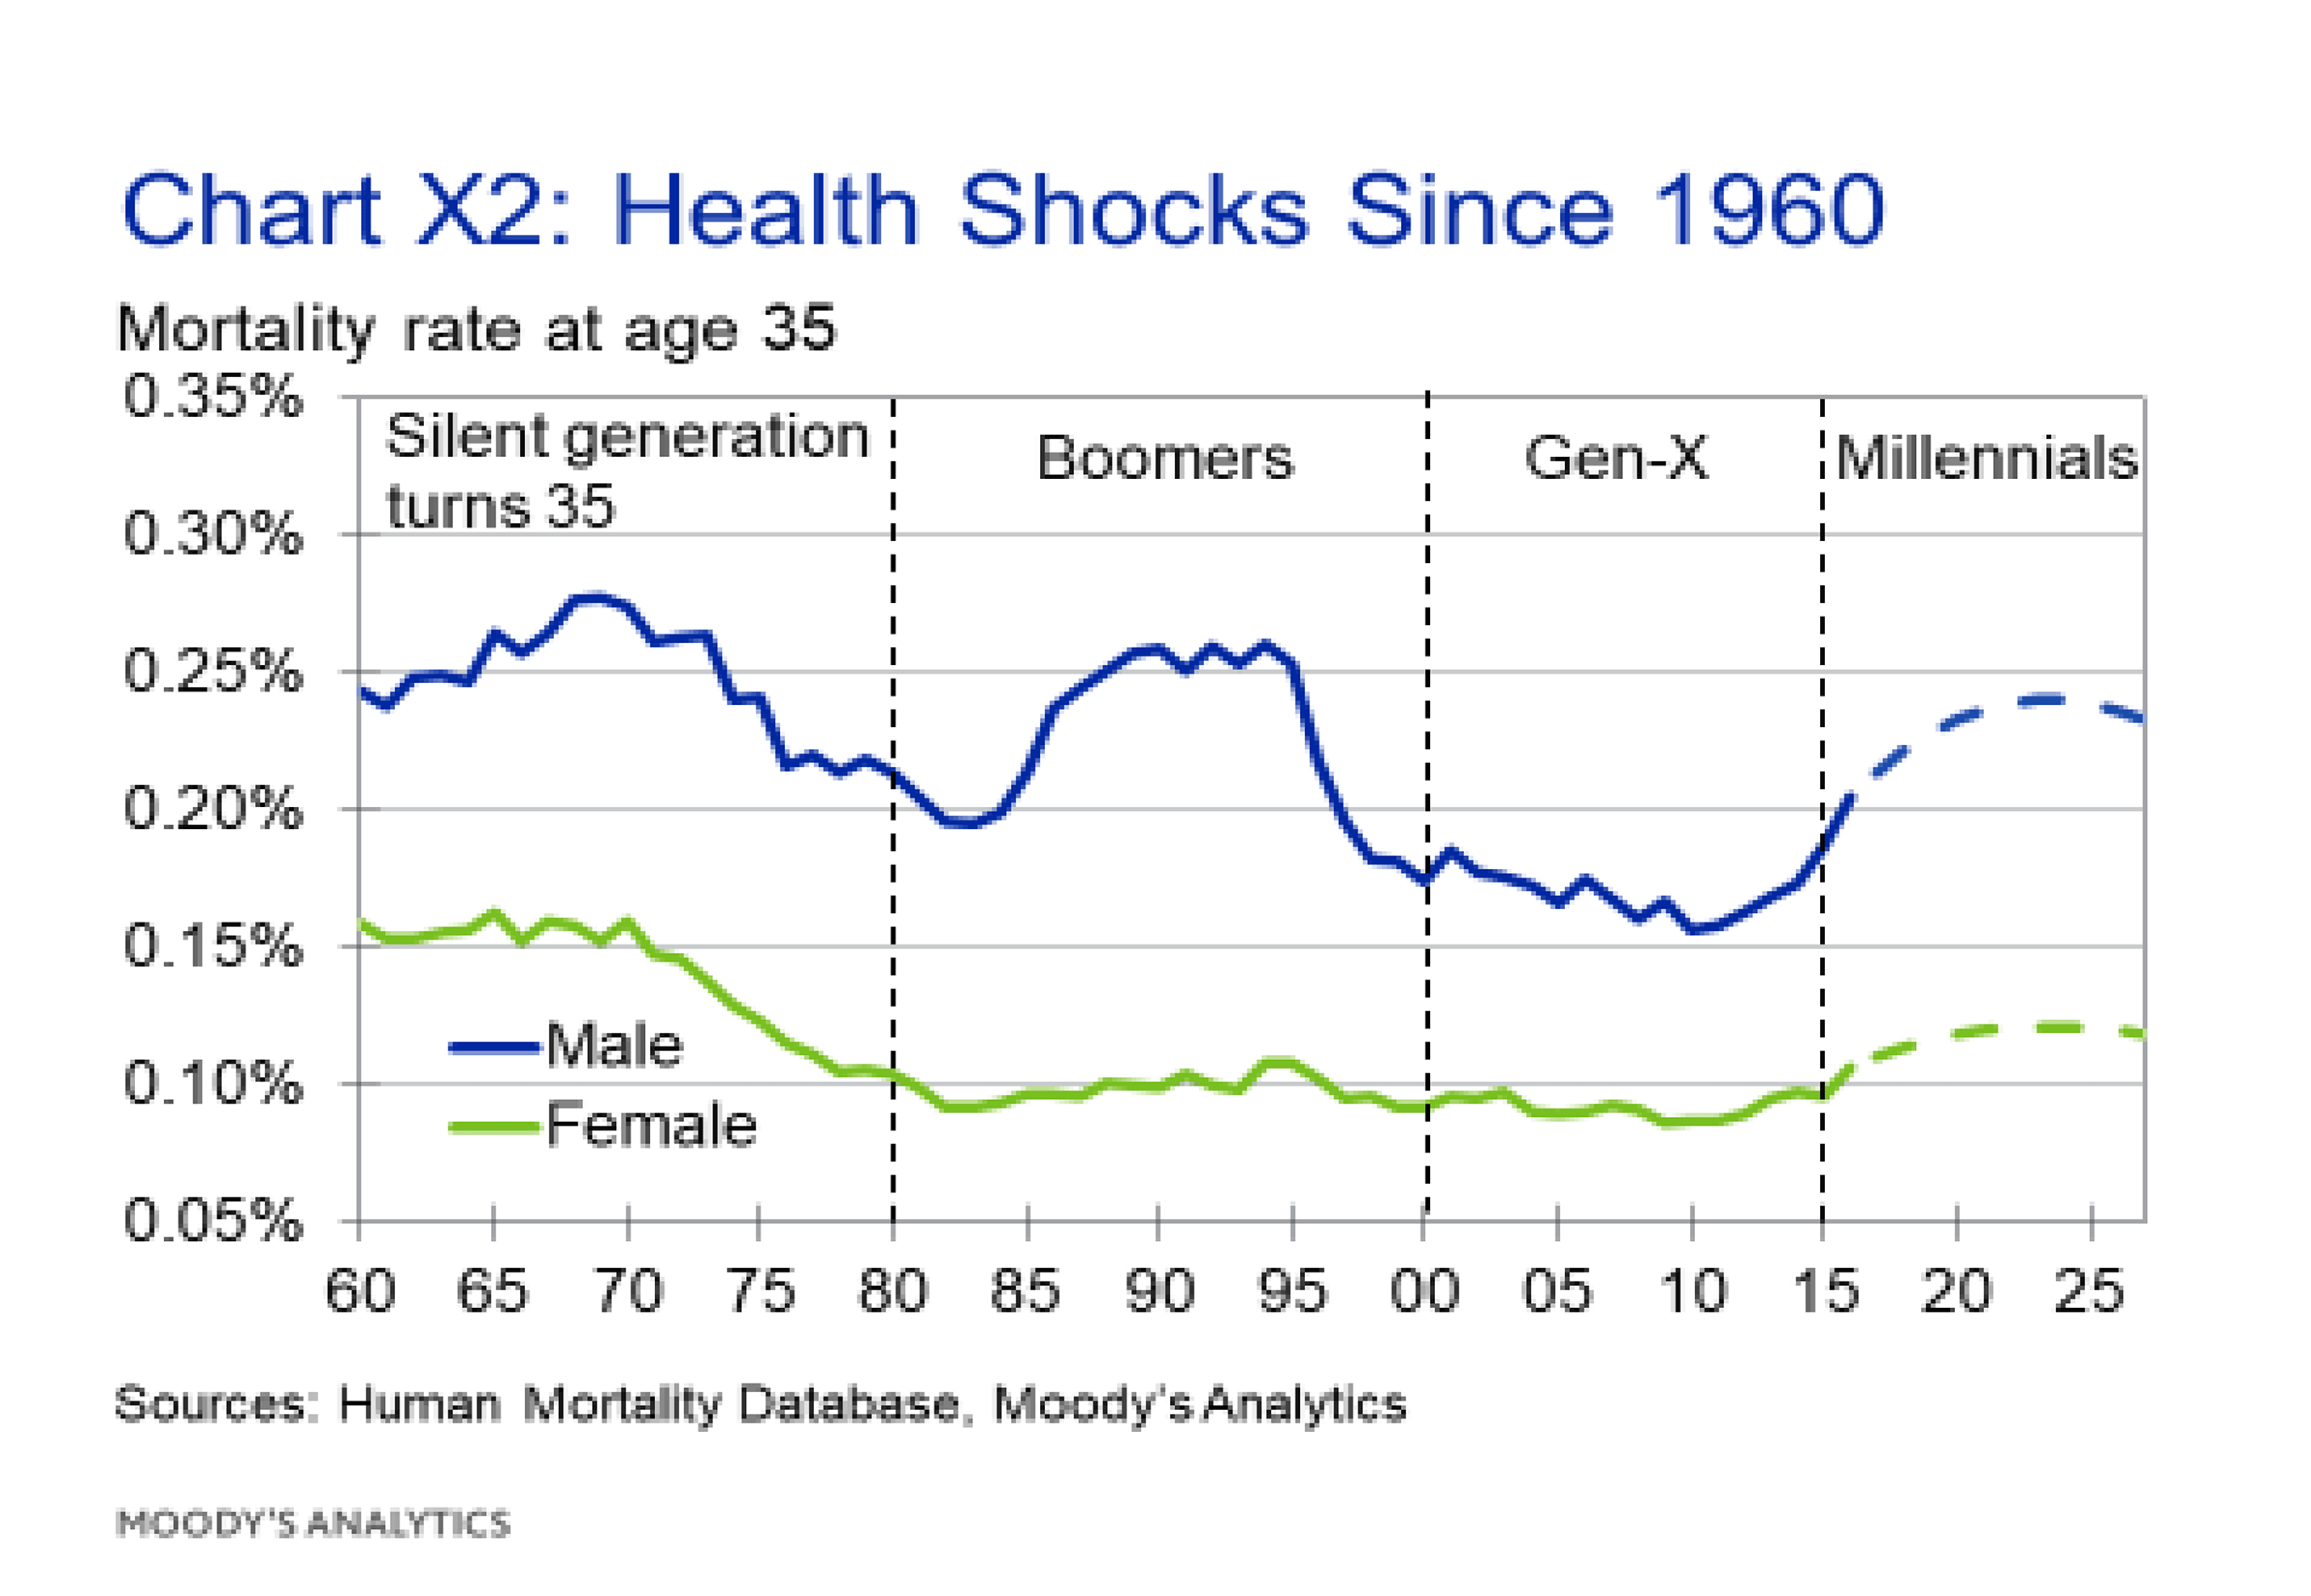 Chart X2: Health Shocks Since 1960